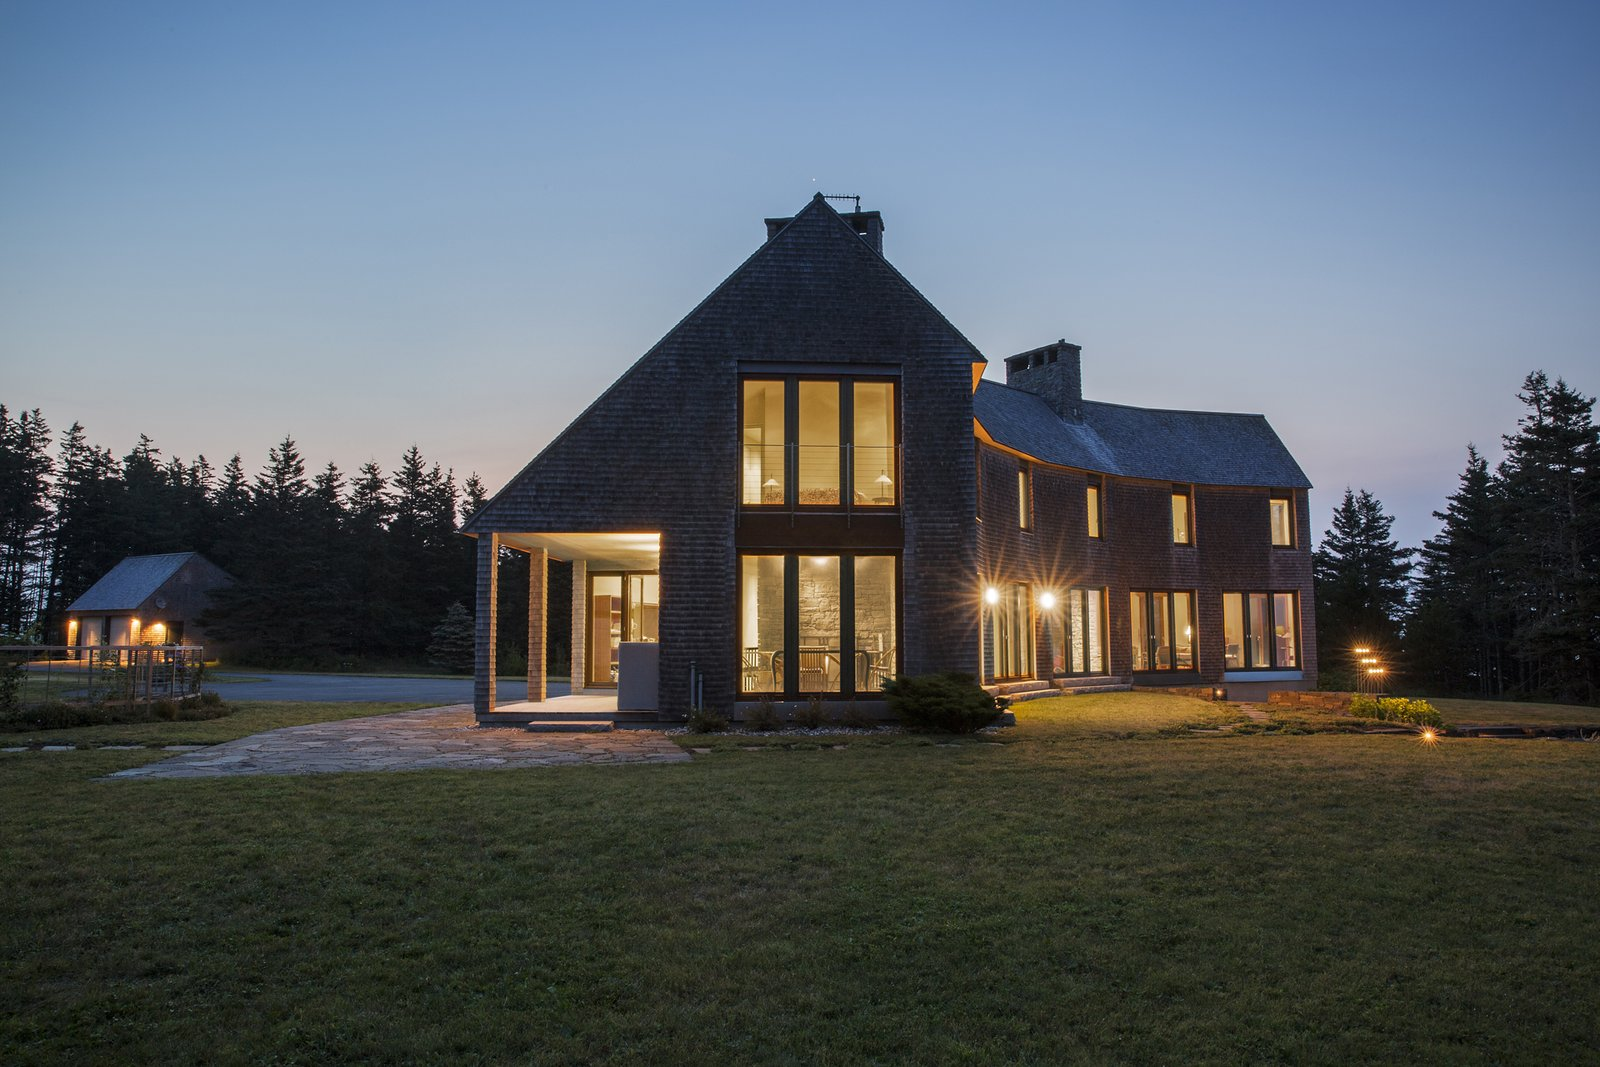 Exterior, Shingles Roof Material, House Building Type, Wood Siding Material, and Gable RoofLine West facade (dining room, guest bedroom) at night  Deep Cove House by Elliott + Elliott Architecture